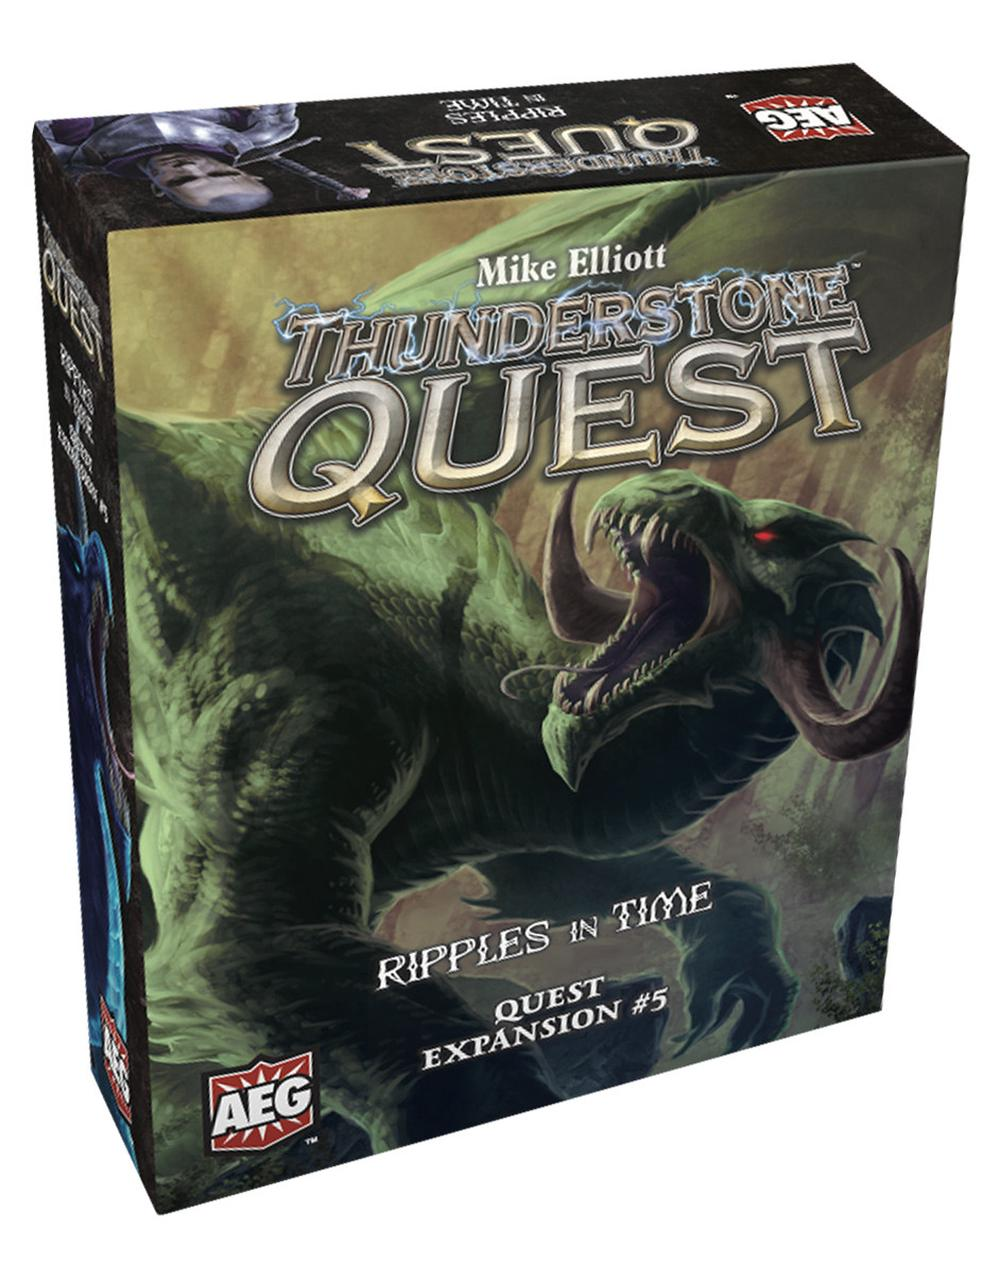 AEG Thunderstone Quest - Ripples In Time Expansion